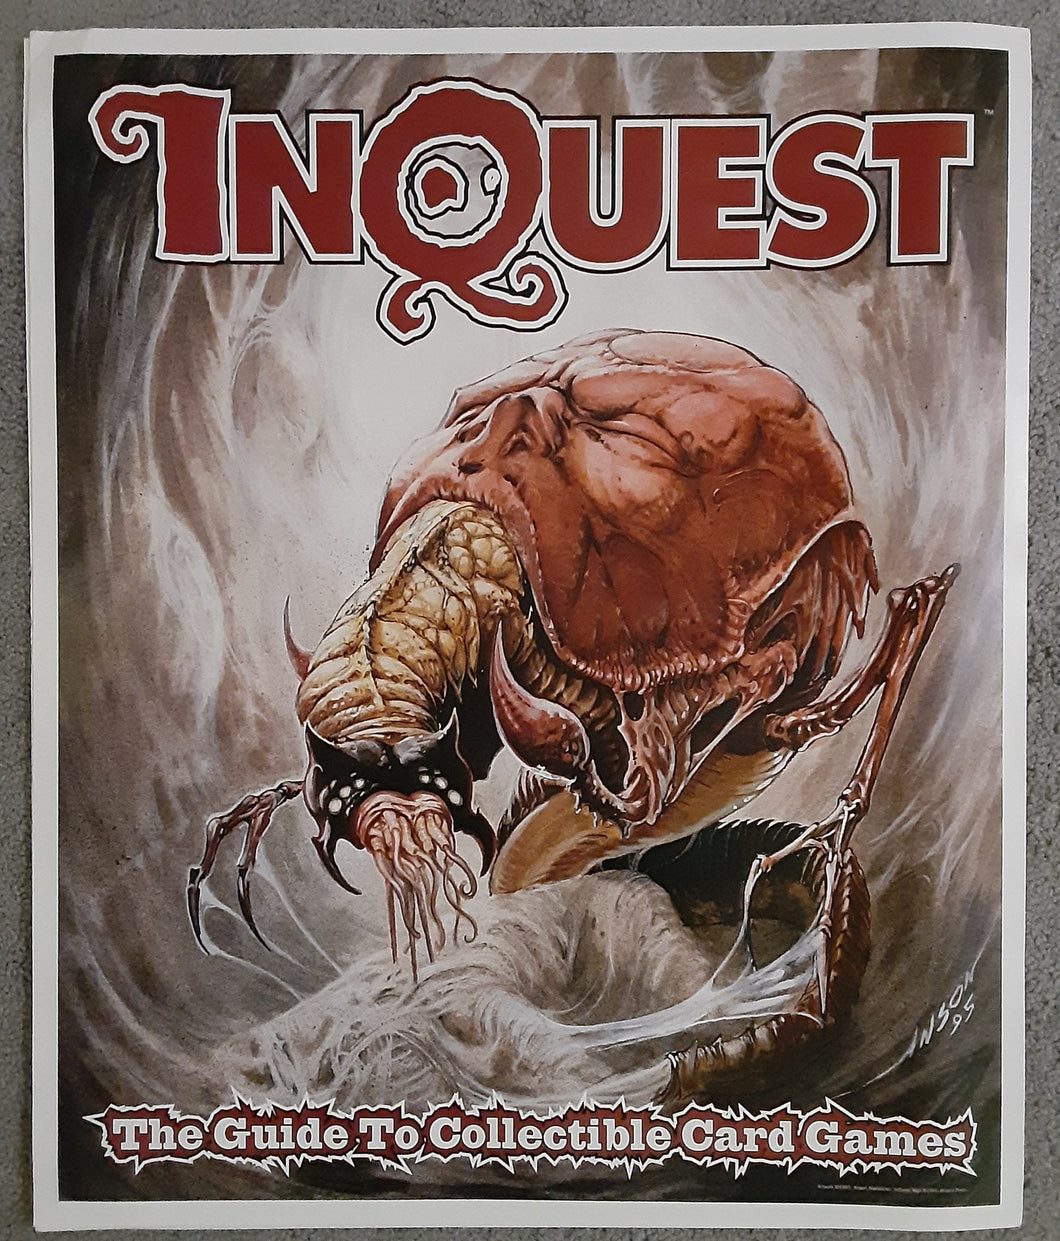 Rare Inquest Magazine Poster